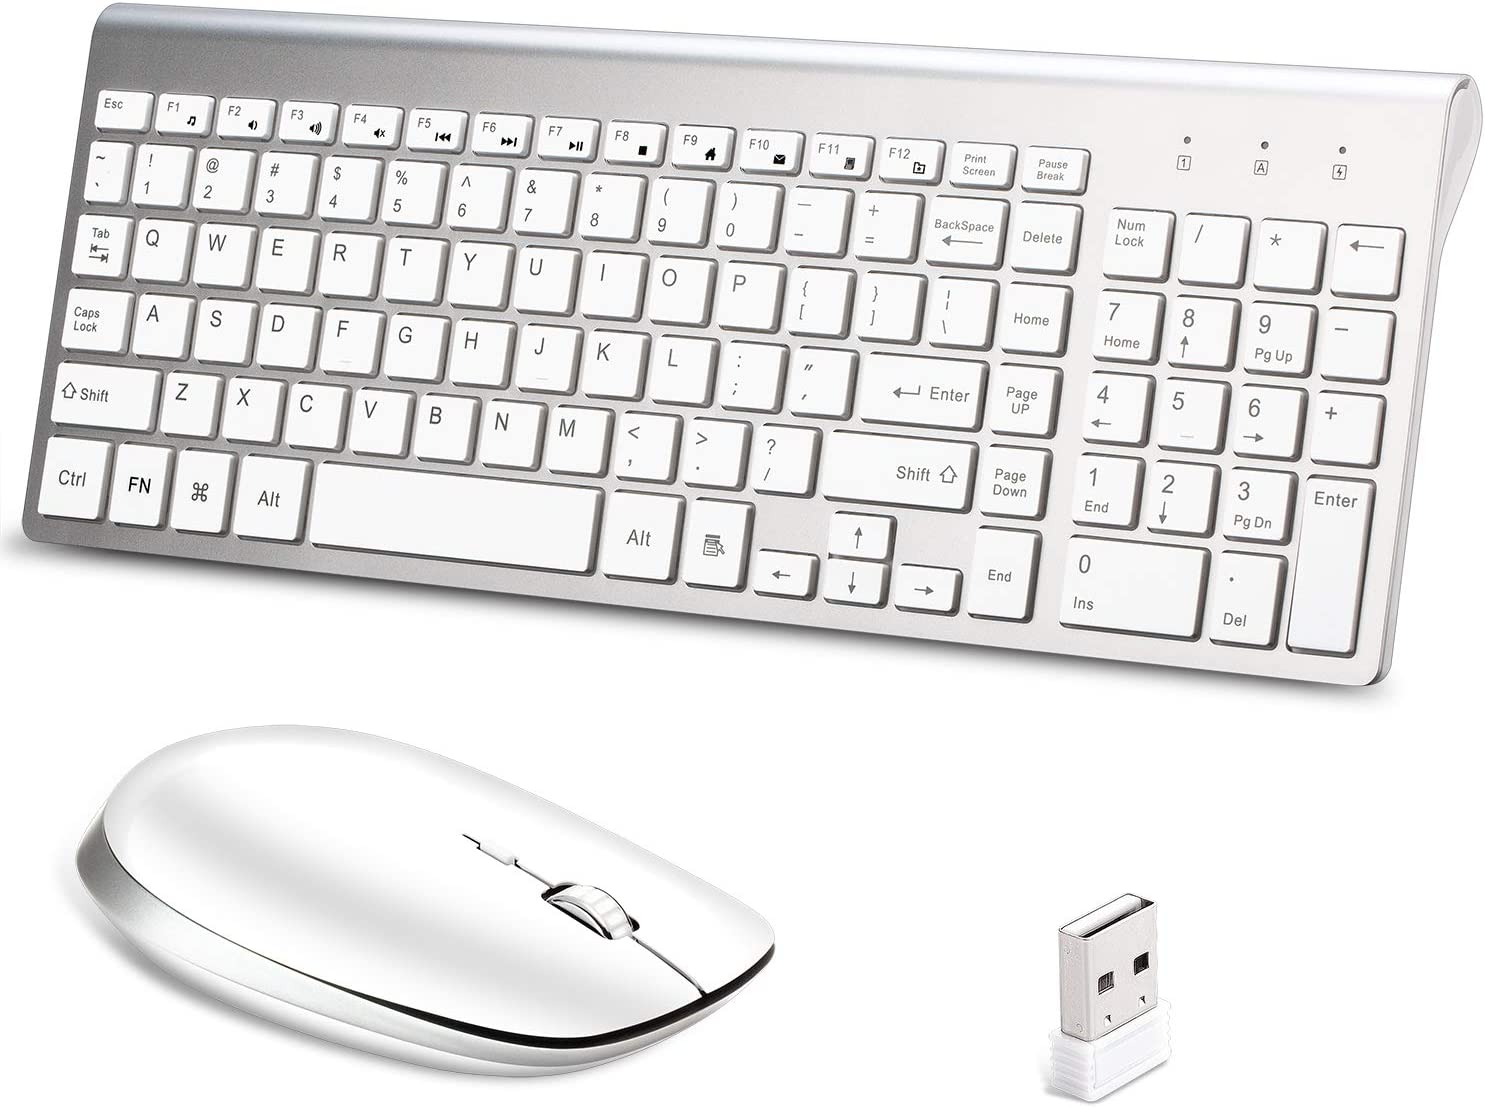 Wireless Keyboard and Mouse Combo,Lucloud 2.4GHz Ultra-Thin Portable Keyboard and Silent Mouse for PC Desktop Computer Laptop Mac Tablet (Comfortable Mouse, Sliver+White)